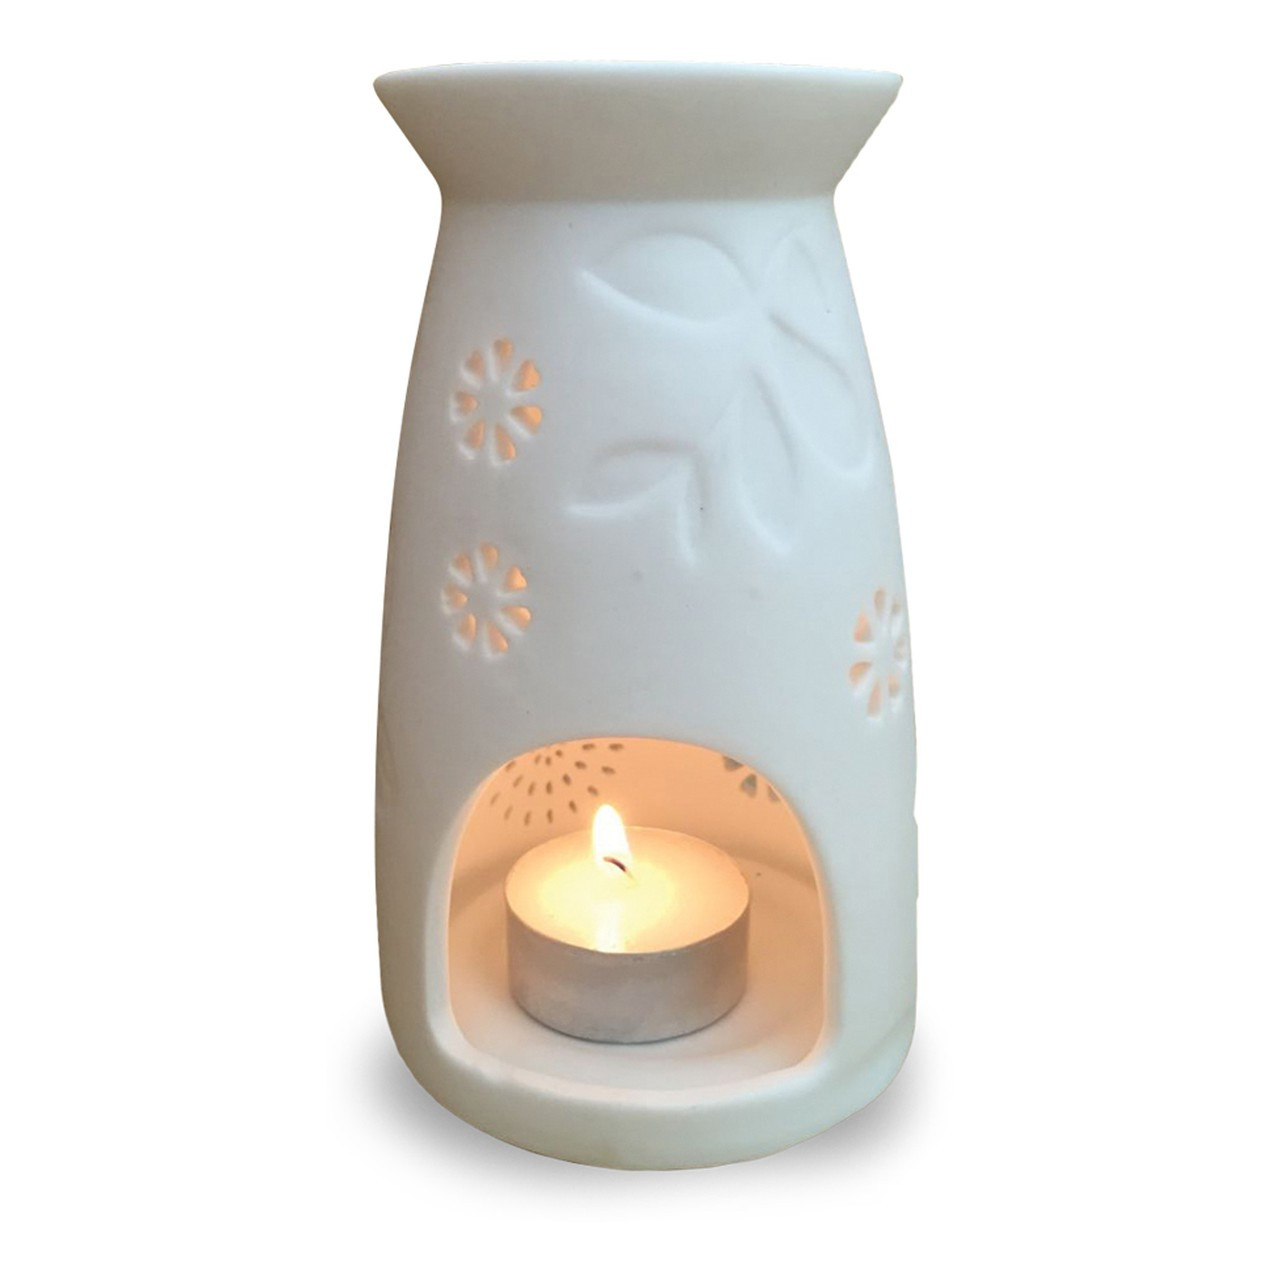 Oilessence Ceramic Essential Oil Warmer With Tea Light Diffuser For Aromatherapy